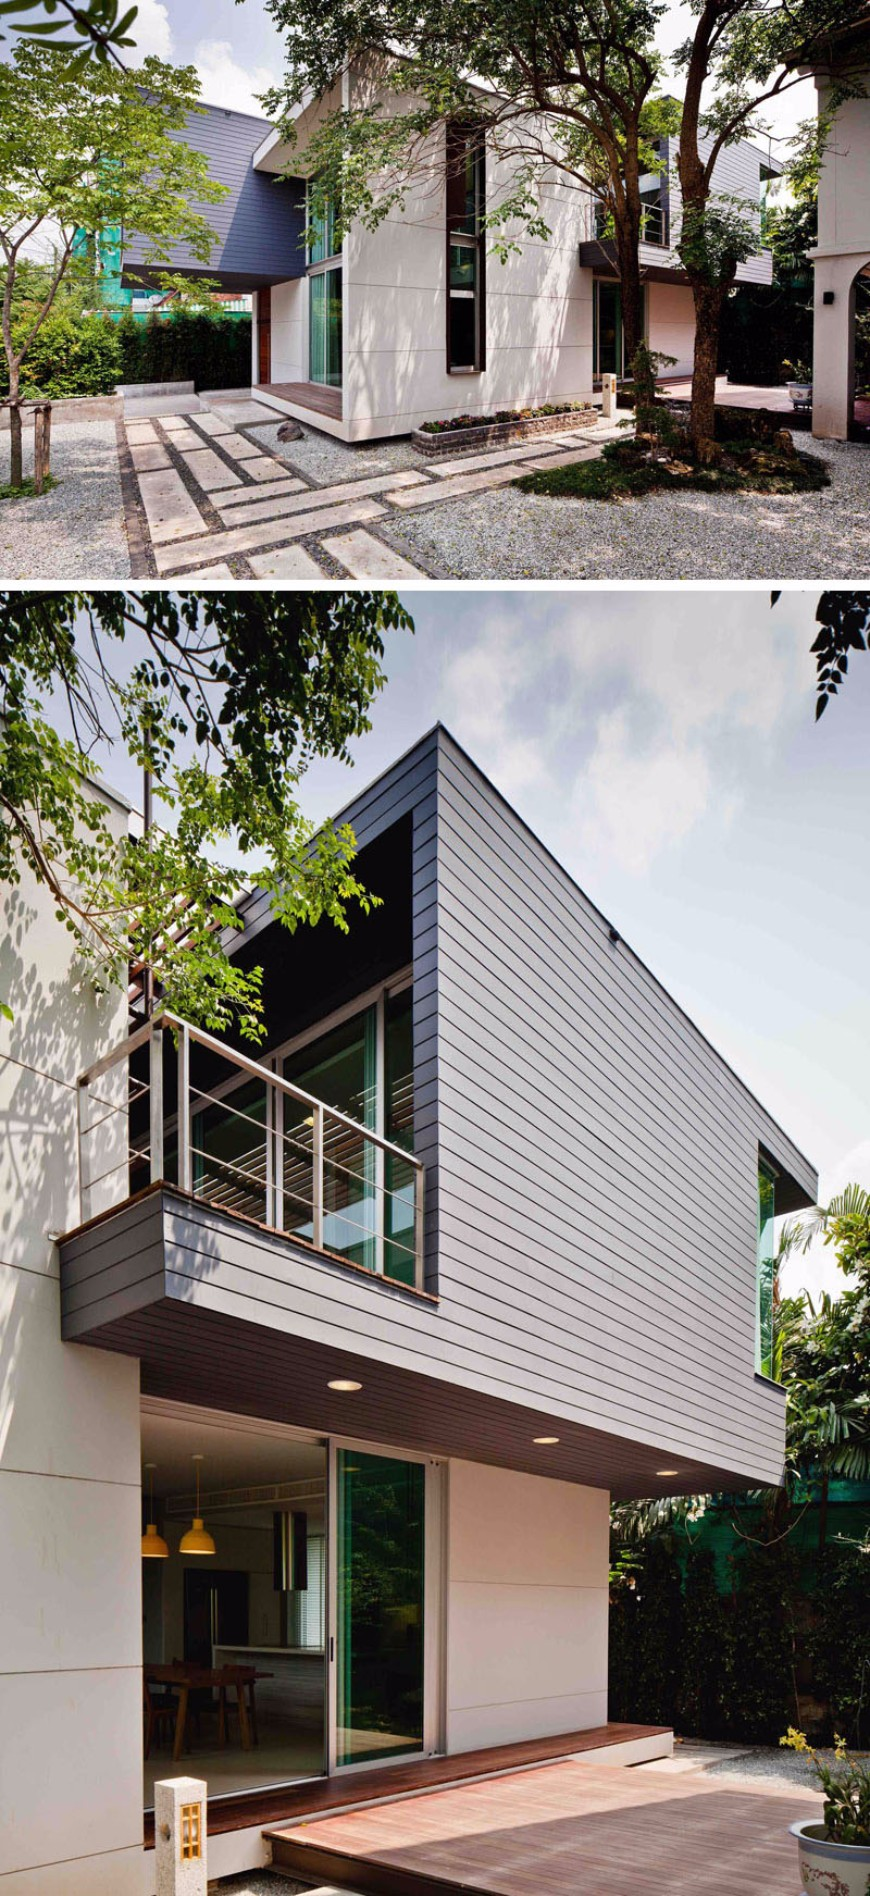 Around the World: Discover this Modern Home in Thailand Modern Home Around the World: Discover this Modern Home in Thailand Around the World Discover this Modern Home in Thailand 1